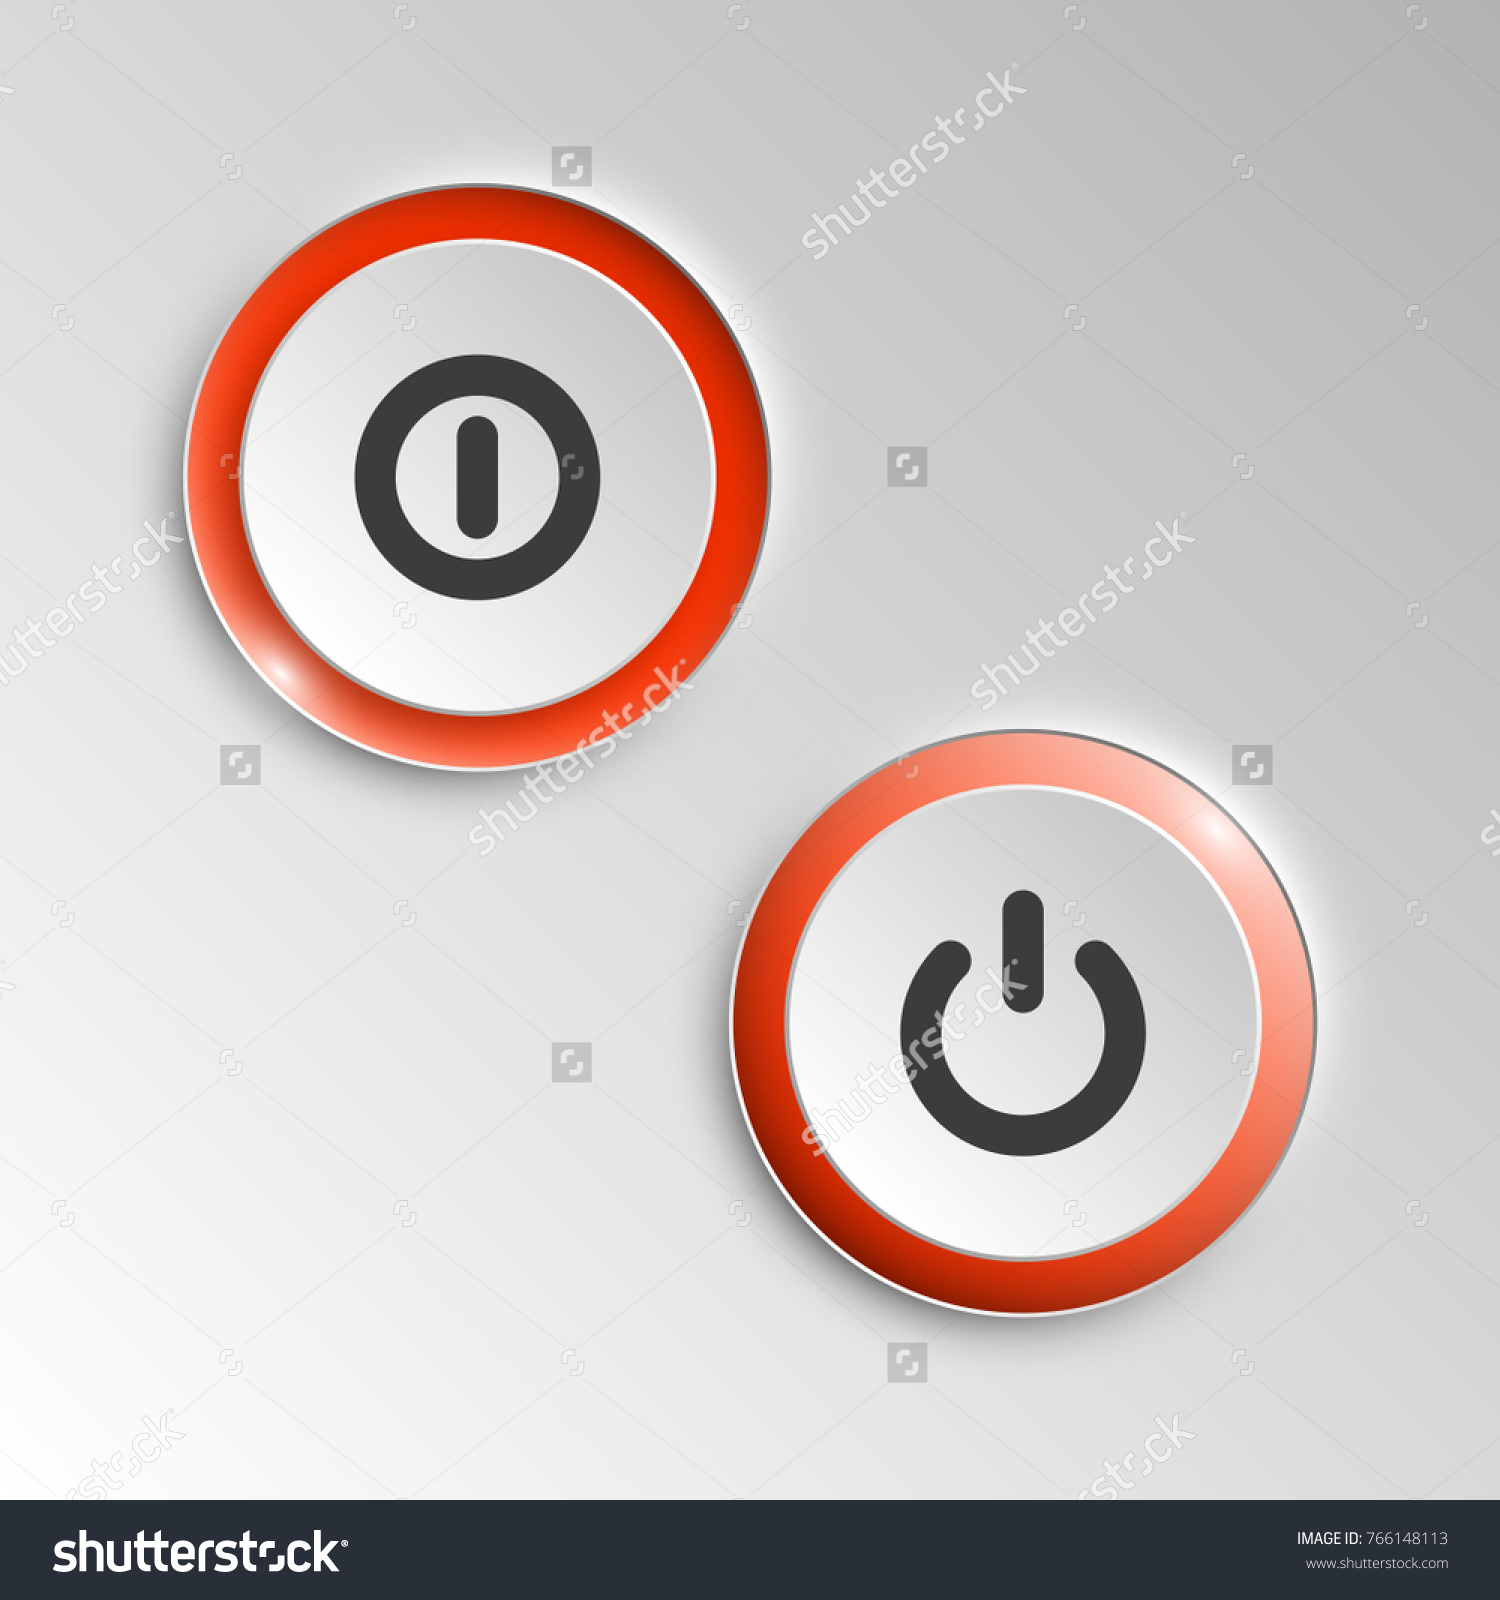 Web Round Button On Off Mark Stock Vector Royalty Free 766148113